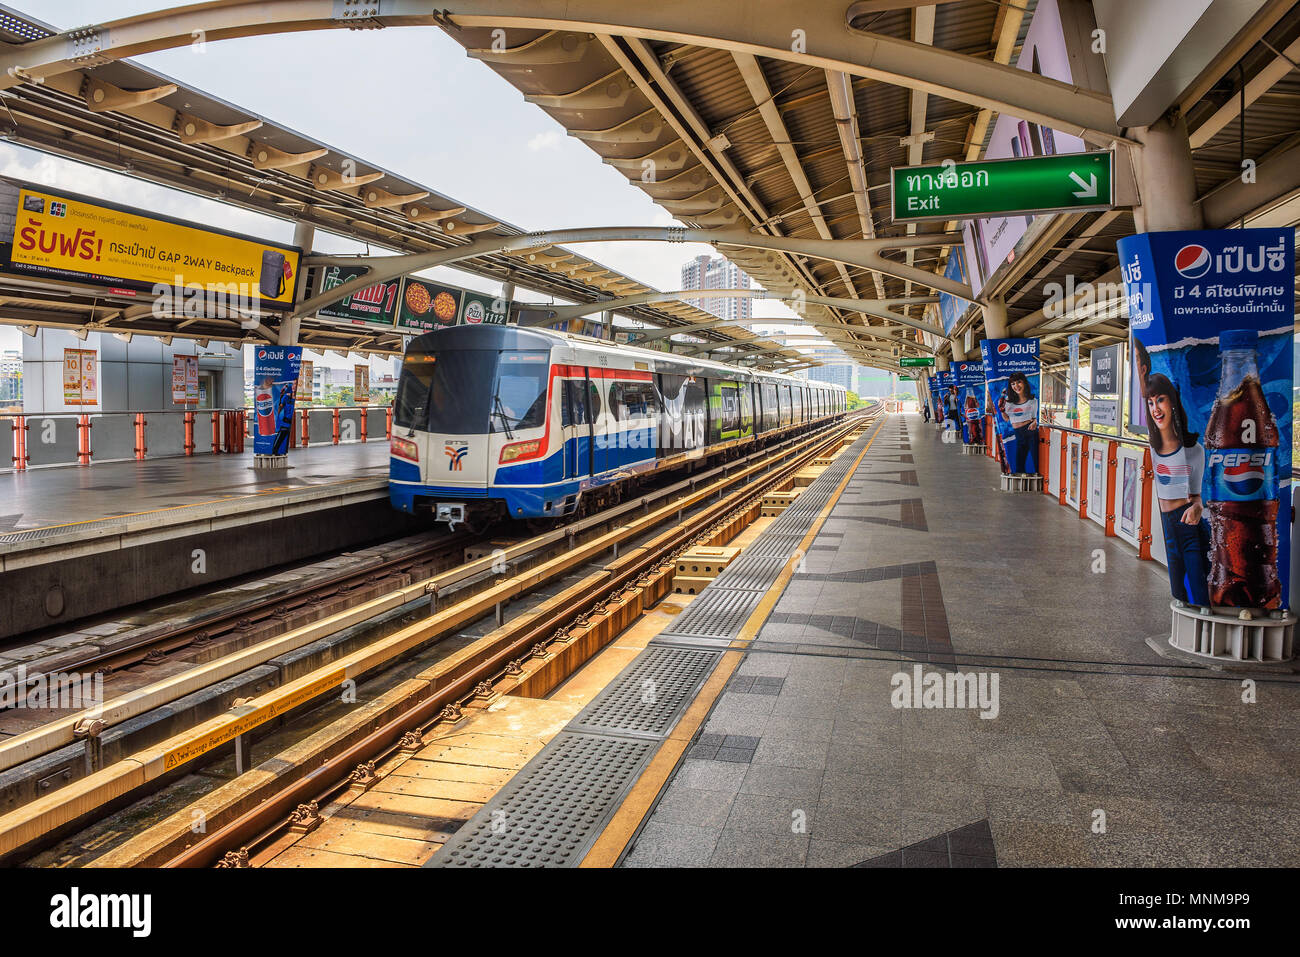 Train at Skytrain Station in Bangkok - Stock Image